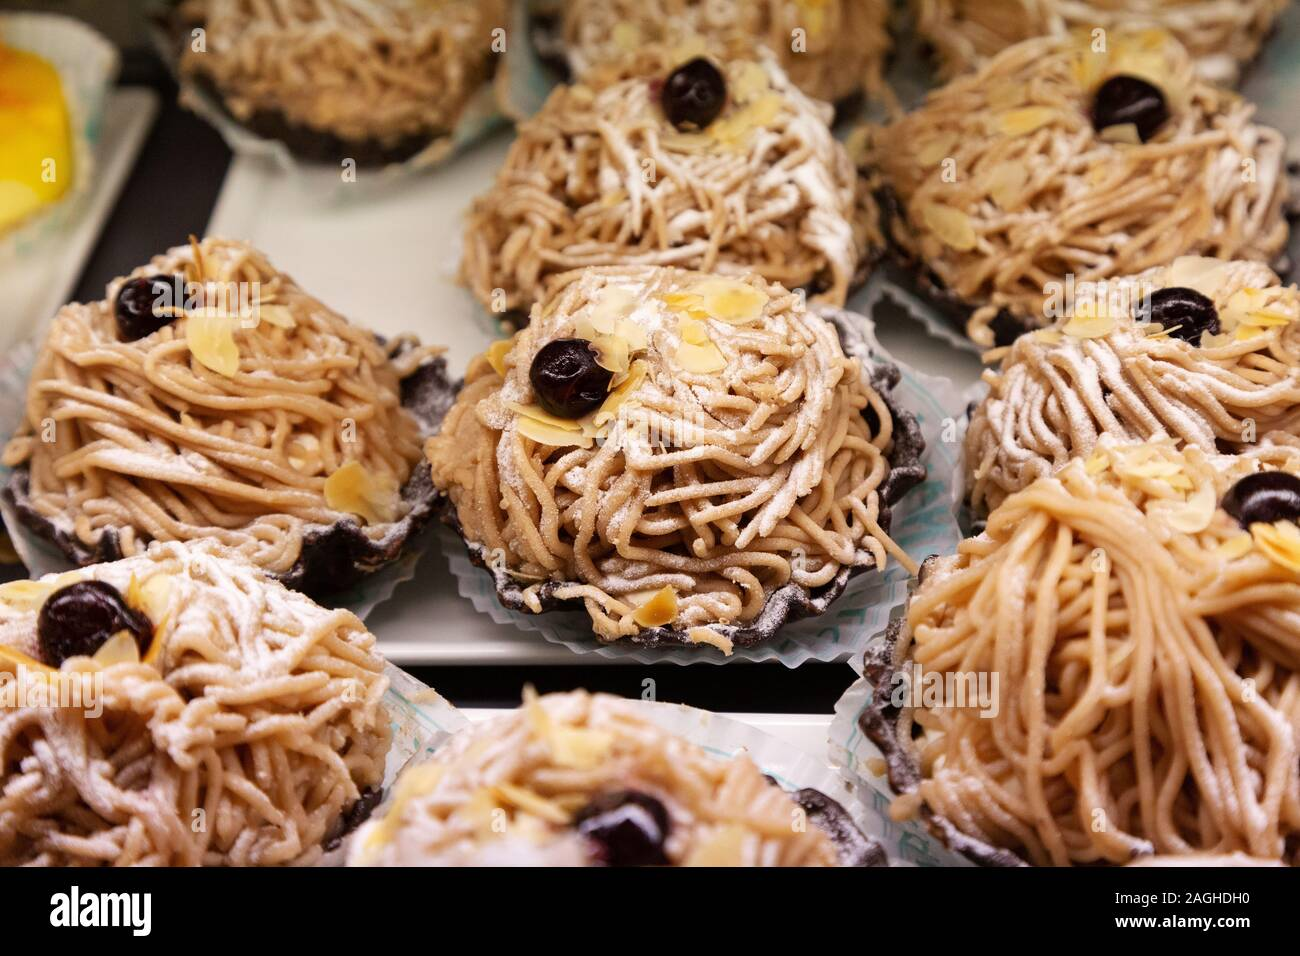 Maroni Blute - a pastry from the famous coffee shops, Vienna Austria Stock Photo